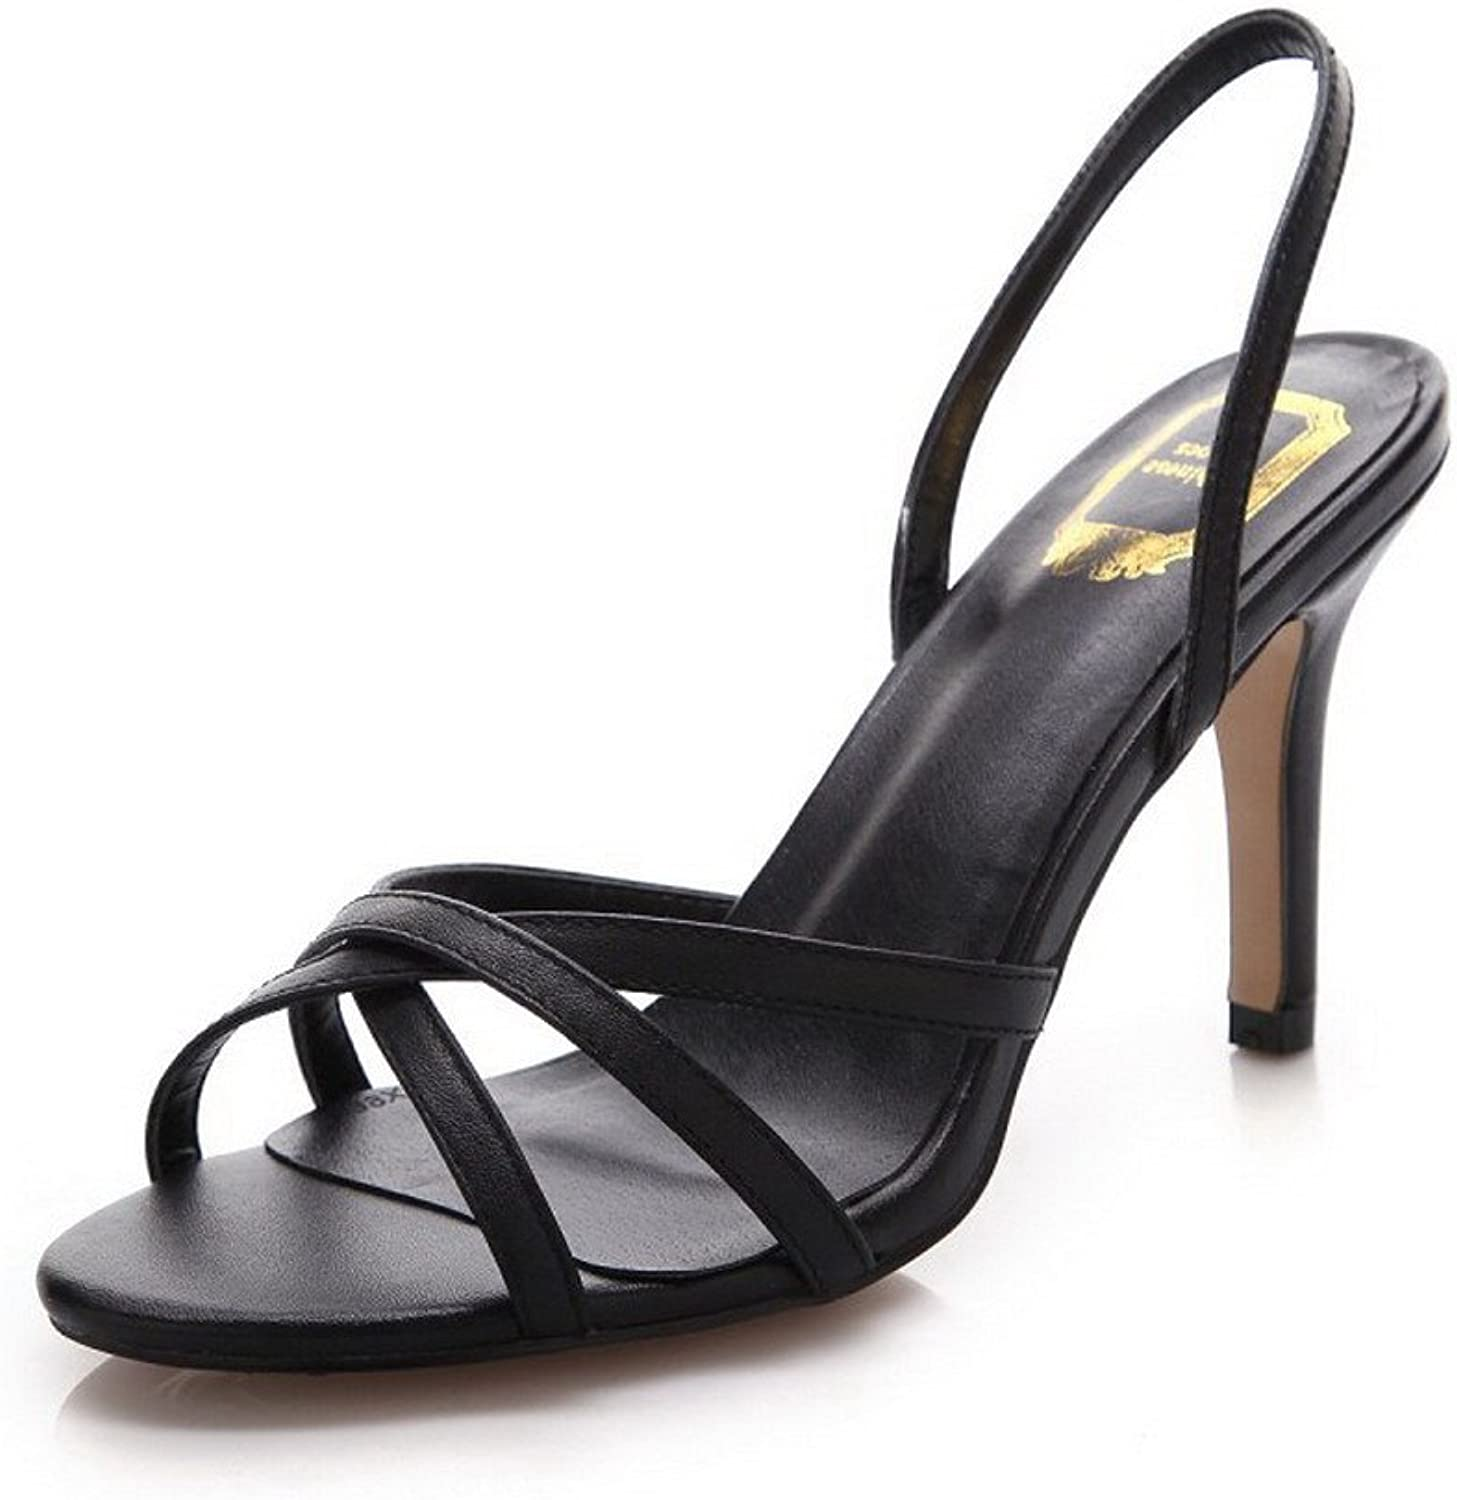 AmoonyFashion Women's Peep-Toe High-Heels Soft Leather Solid Pull-on Sandals